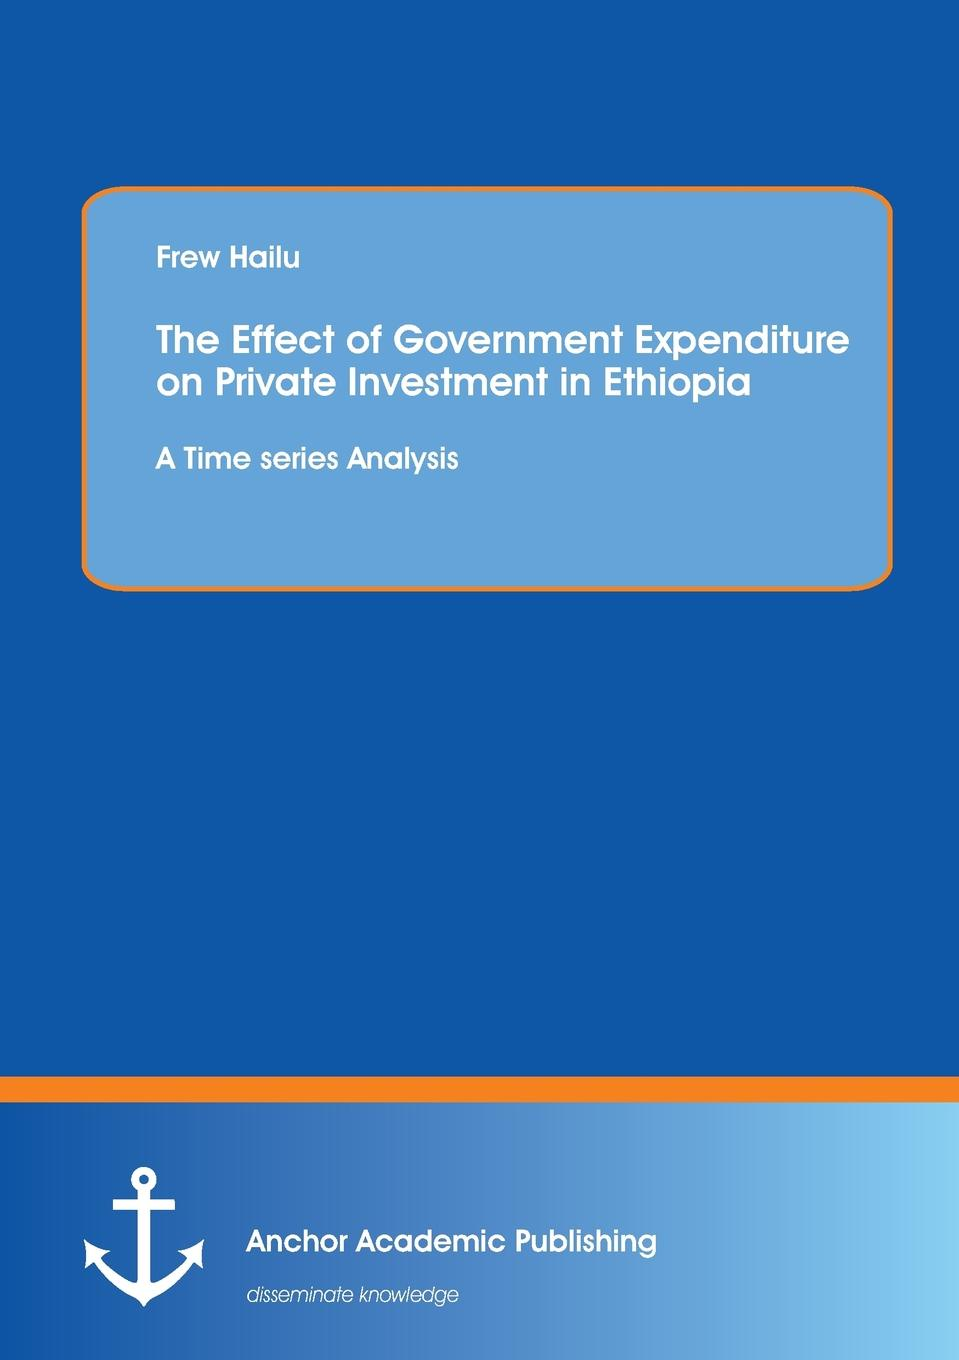 Frew Hailu The Effect of Government Expenditure on Private Investment in Ethiopia. A Time series Analysis jerald pinto e quantitative investment analysis